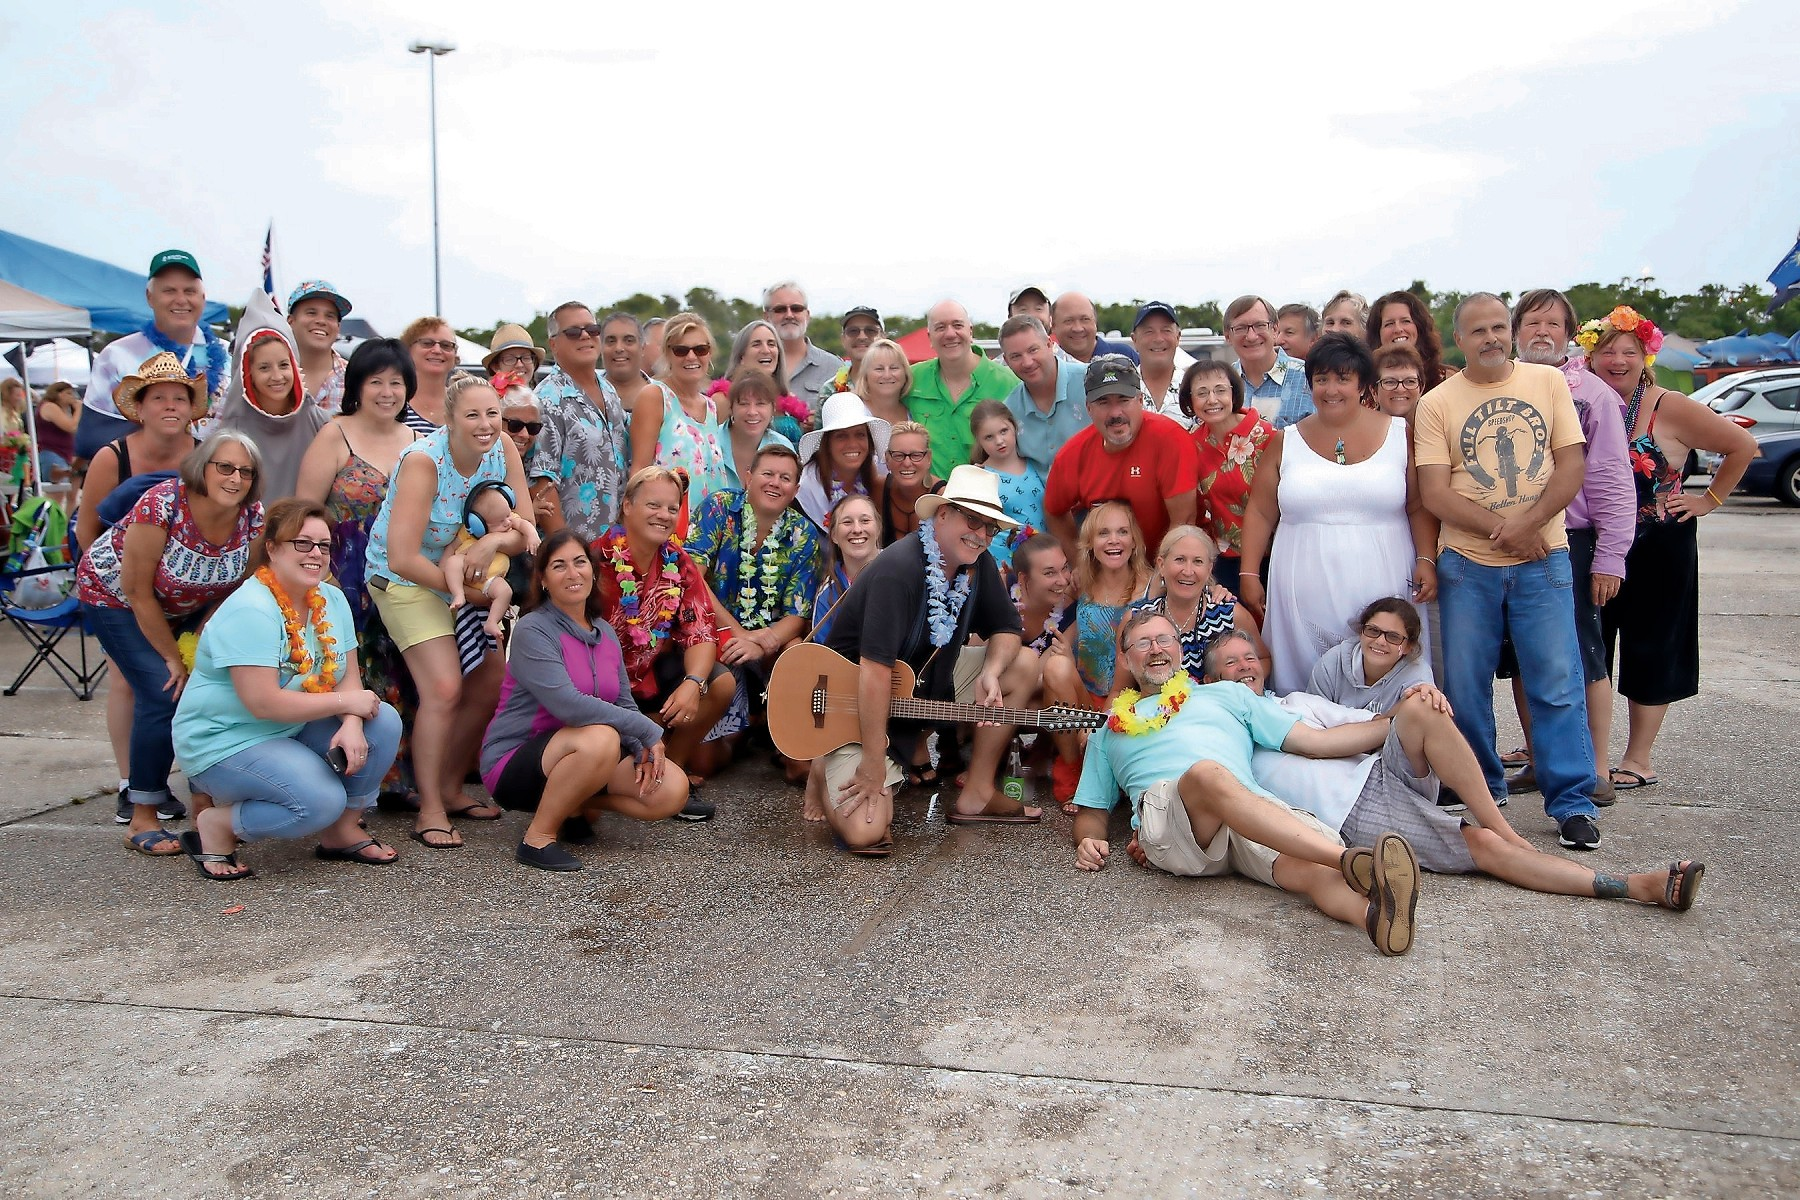 Friends of Captain Crunch and the Barnacles gathered from all over the island for the annual tailgate party and Jimmy Buffett concert at Jones Beach.